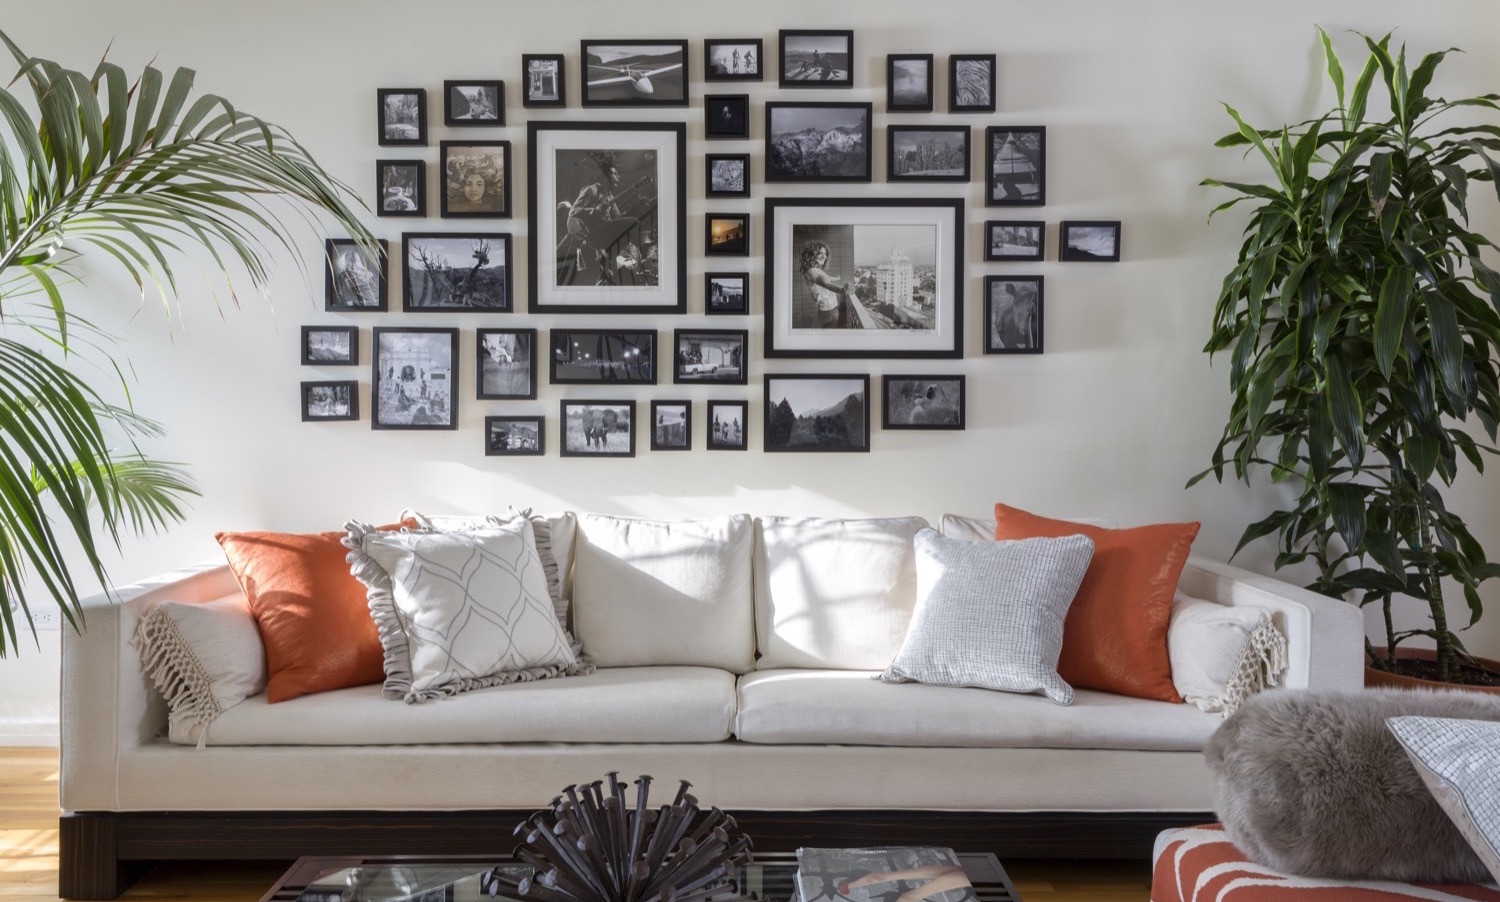 How To Clean Gallery Wall